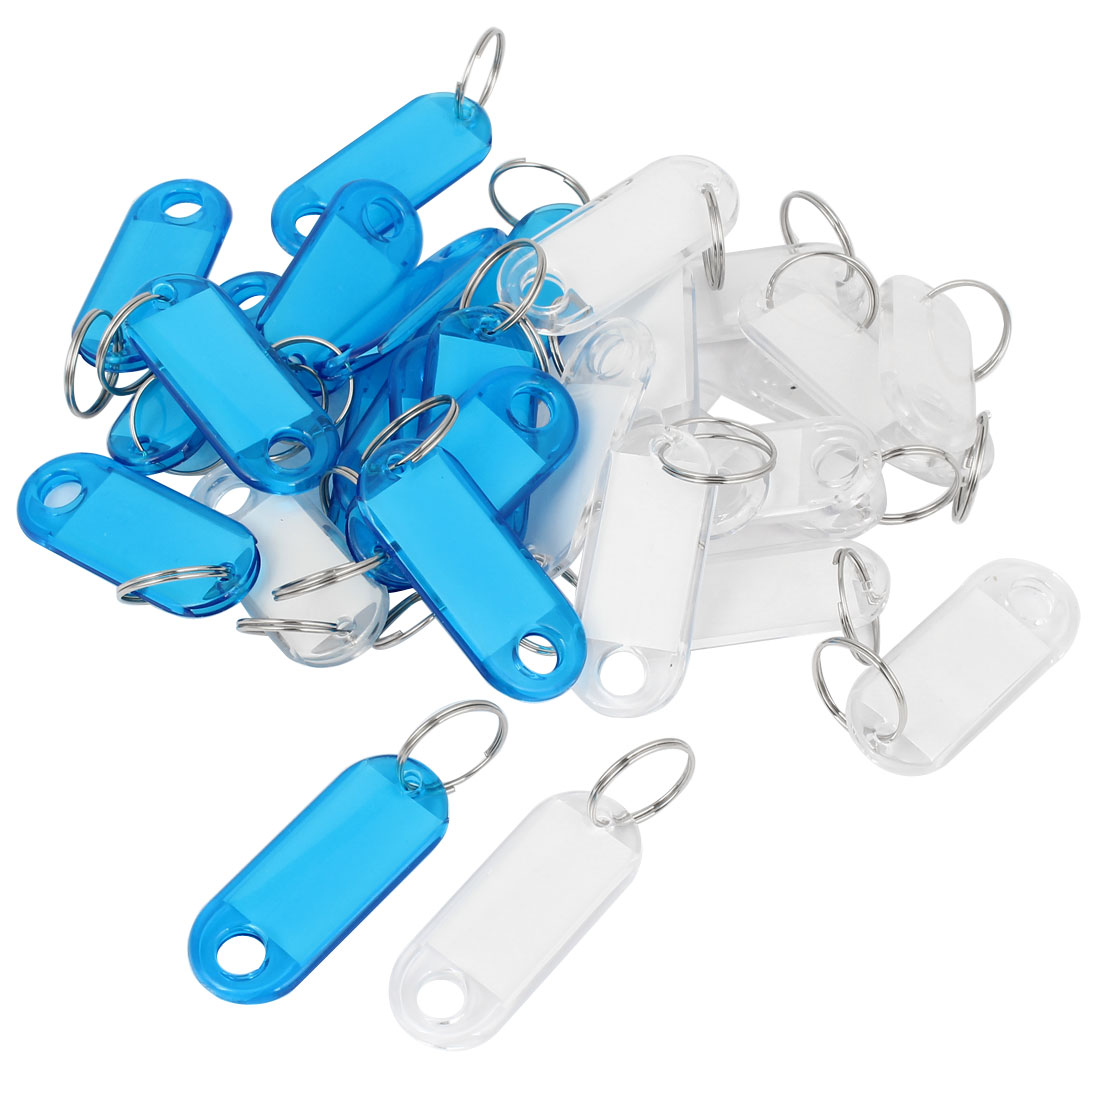 Plastic Key Room ID Tag Name Label Split Ring Keyring Blue Clear 30 Pcs